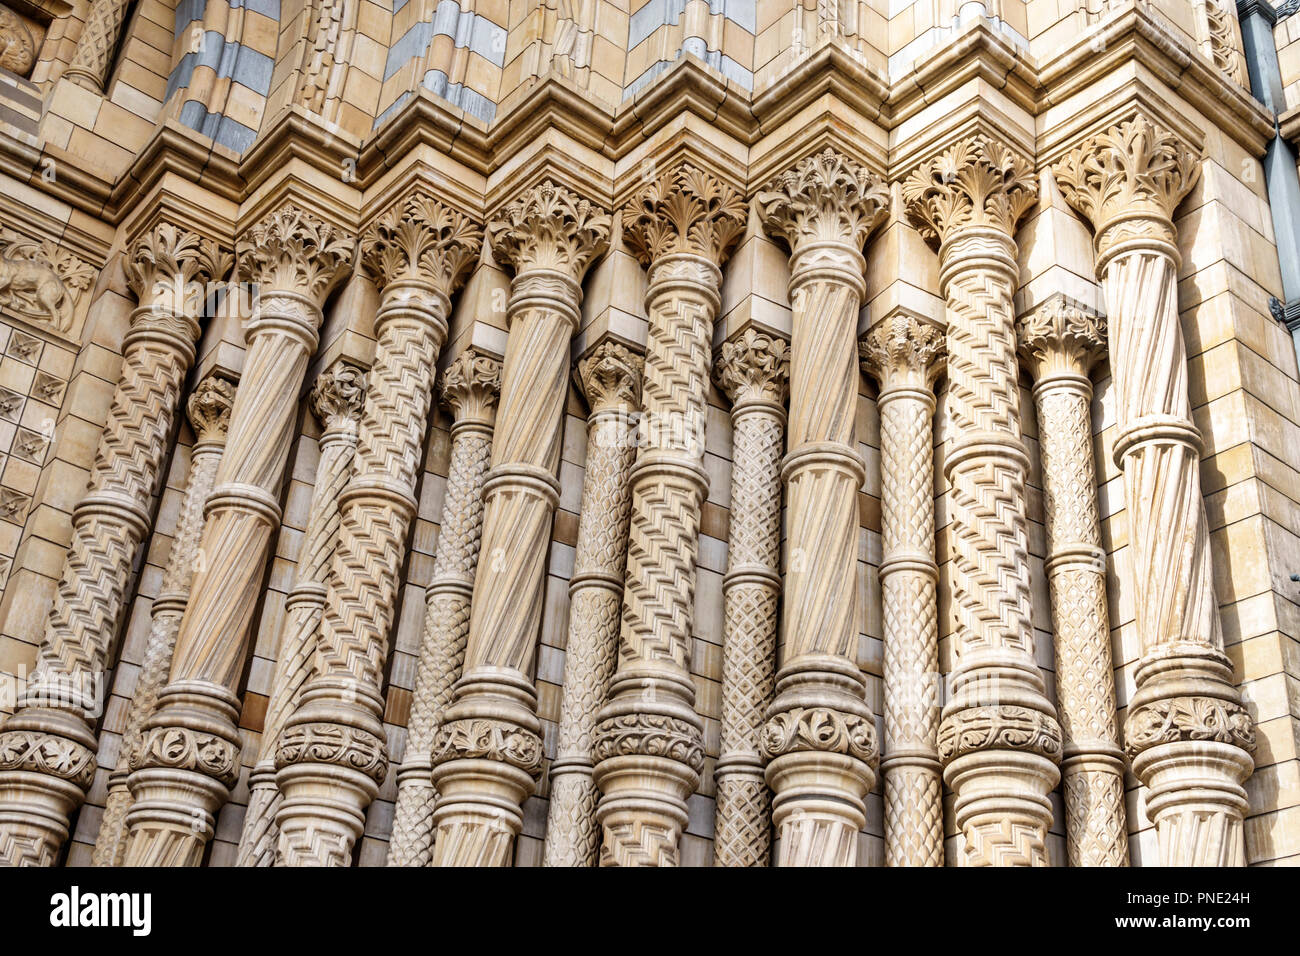 London England Great Britain United Kingdom Kensington Natural History Museum exterior Romanesque architecture facade detail ornate columns pillars Al - Stock Image